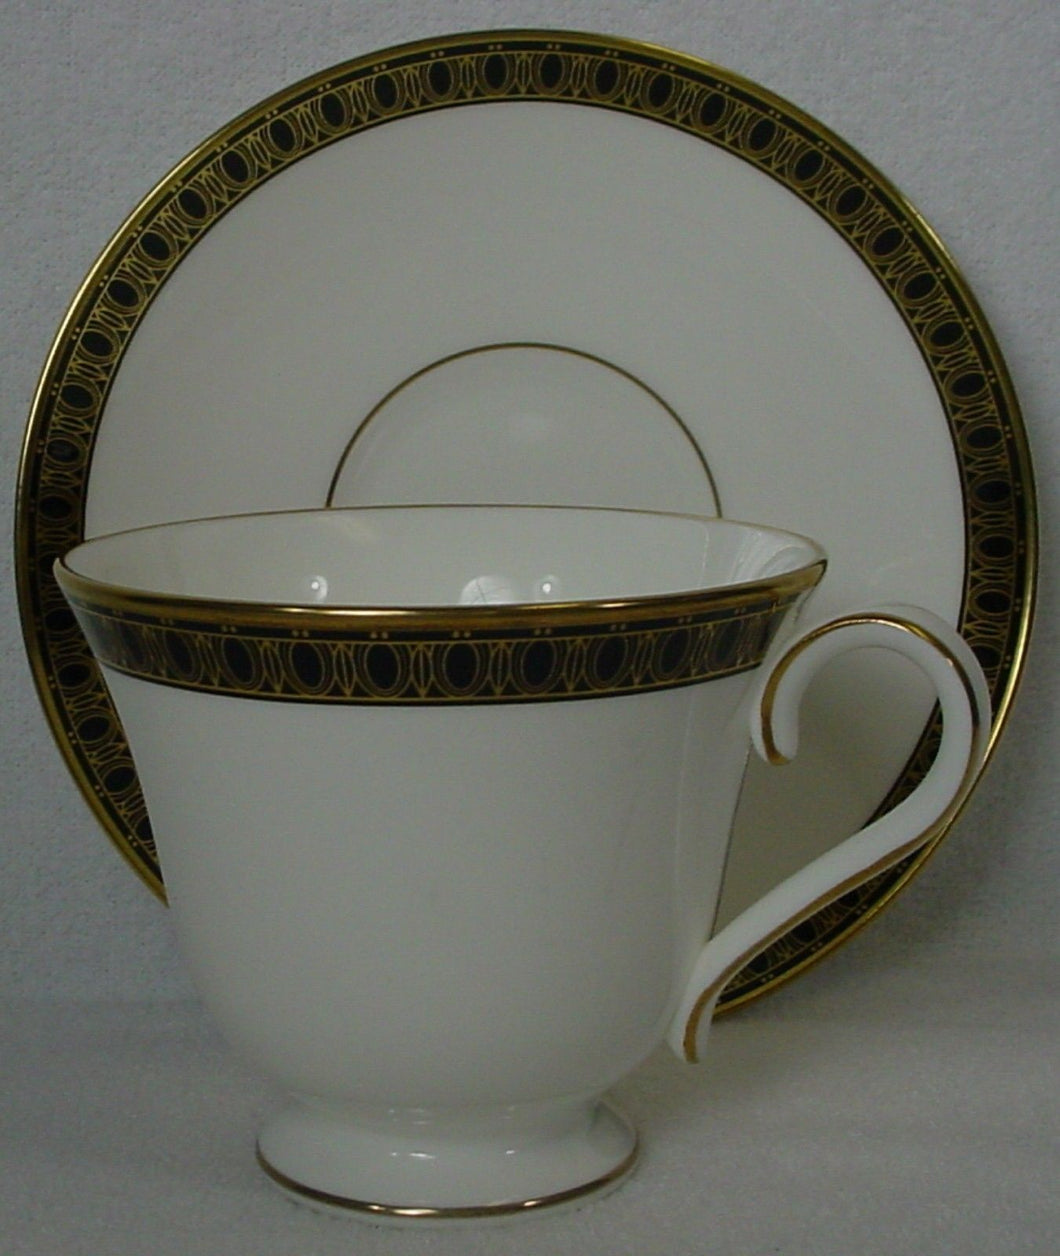 WATERFORD china ASHWORTH pattern CUP & SAUCER Set cup 3